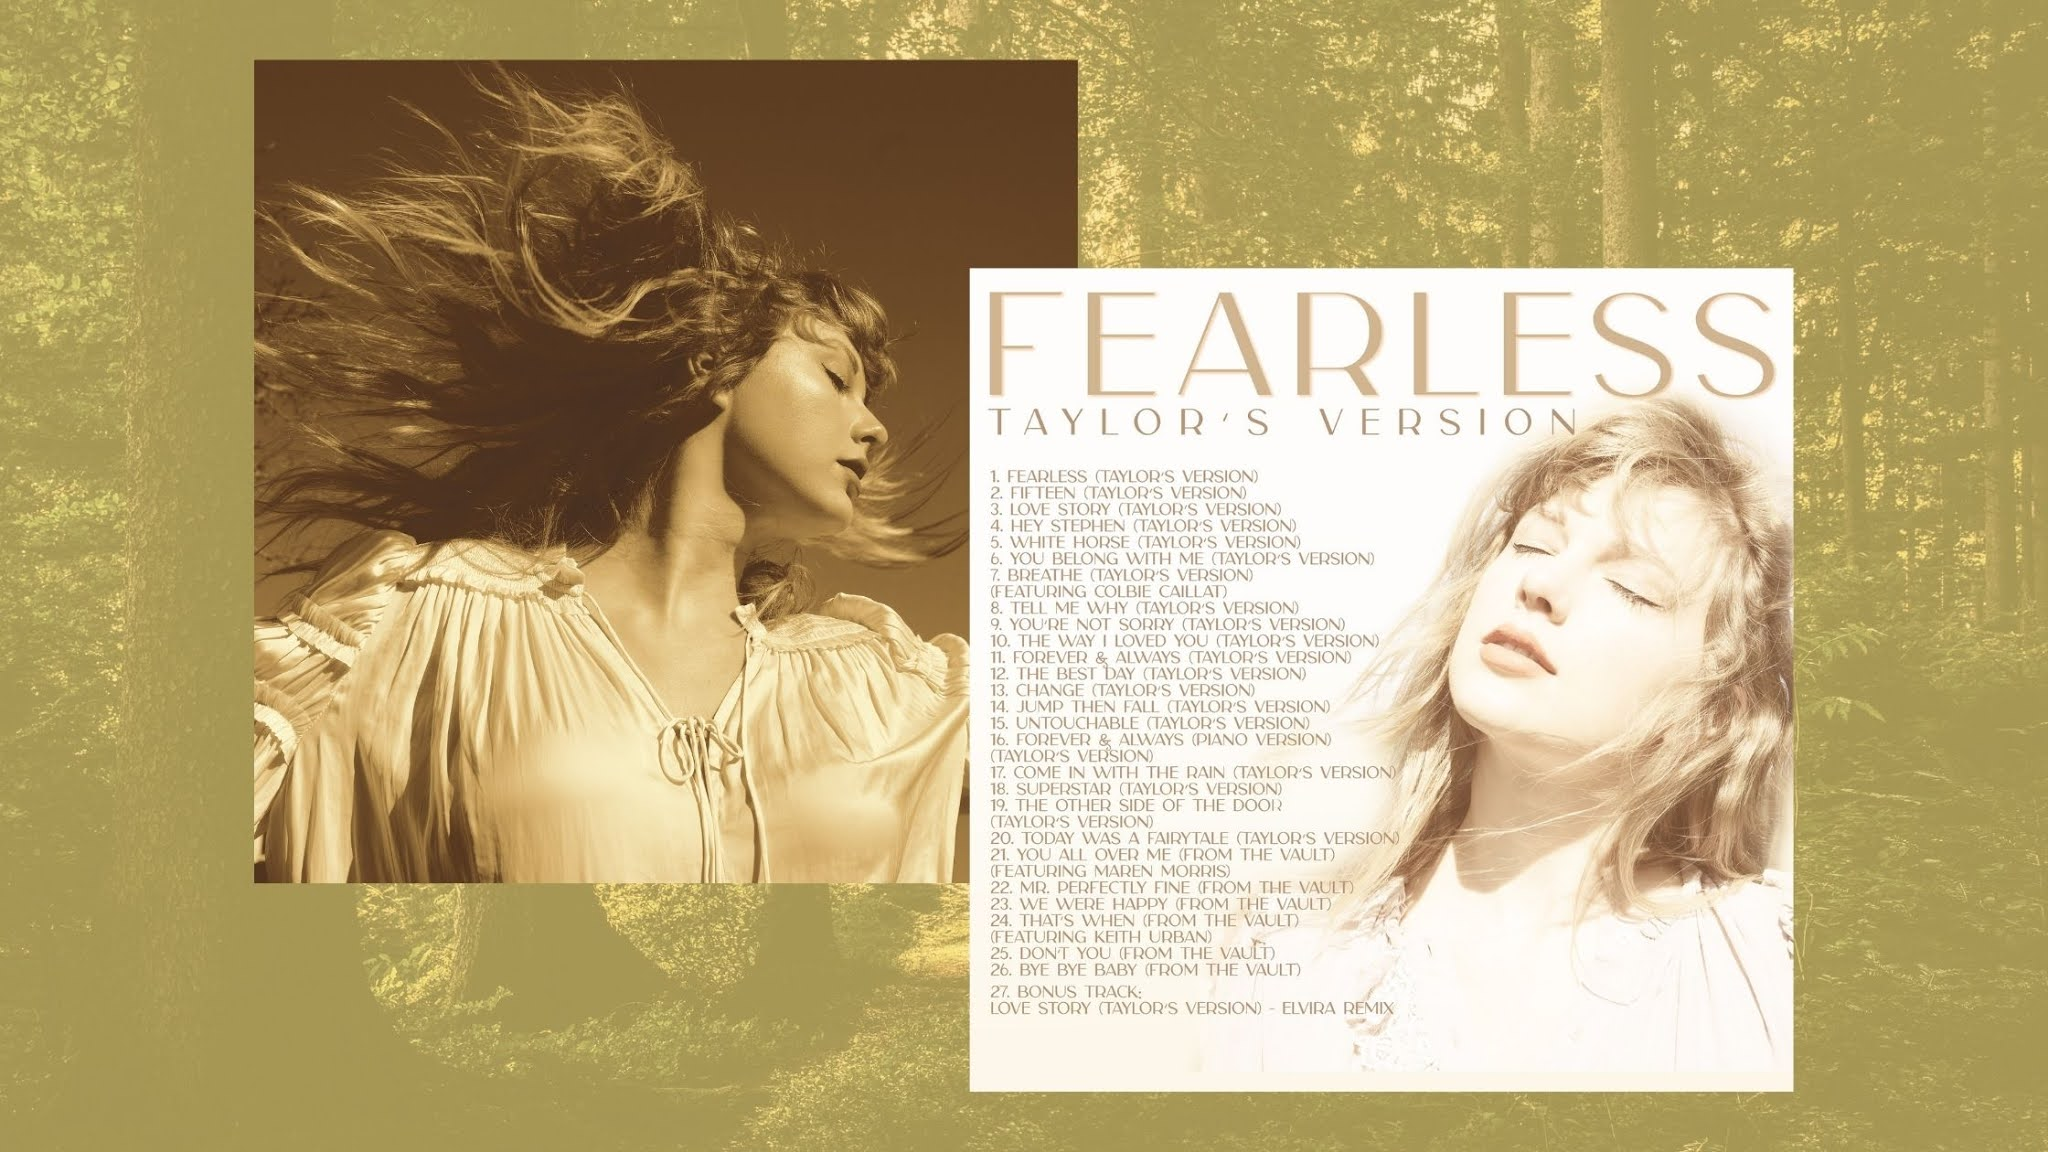 Fearless (Taylor's Version) 04.09